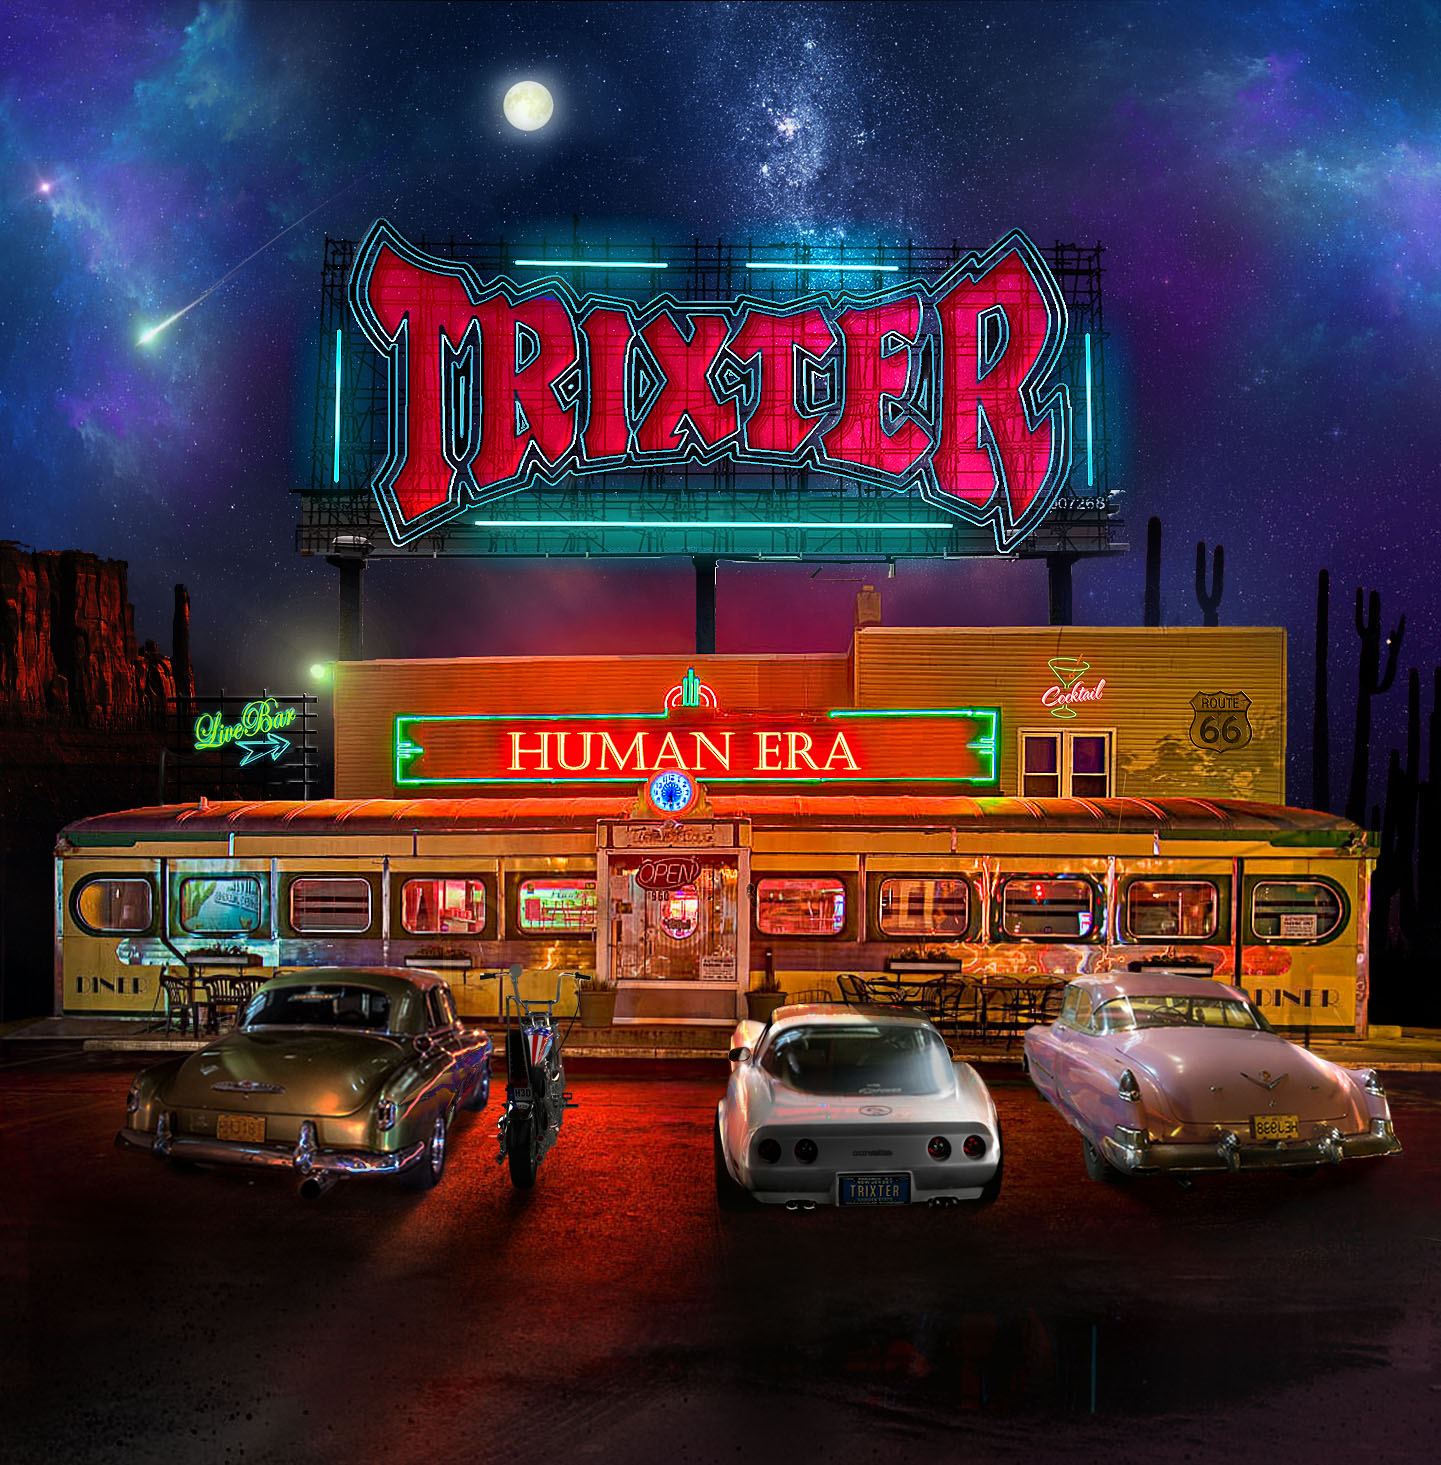 """Trixter – Human Era    I must say, I was pretty excited to pop in Human Era, the latest offering from Trixter…..one of the bands that, in this humble rock writer's opinion just didn't get enough accolades….and still haven't. Sure they were a part of the 2  nd   or maybe 3  rd   wave of bands that fall under the """"glam"""" or """"hair"""" moniker or whatever. I'd hope if Trixter had hit the scene earlier, they'd have the world by the balls… but ya know what? To me they still do, and that's ok. These guys are solid, fun hard rock that goes beyond a scene or look. Don't know what I'm talkin' about? Go grab Human Era and you'll have all the answers you need.    Rockin' To The Edge Of The Night blasts this record off and really sets the tone for whats to follow. Riffy and catchy with a great hook, you'll be rollin' down the windows and wishing it was Friday night already. The 2  nd   song, Crash That Party completes this album's opening 1-2 punch and completely grabs you by the throat. """"You WILL listen to this record!"""" it says, as it shakes you and stares you down. Beats Me Up and Every Second Counts are additional standouts on this record… the musicianship on all fronts has stepped up… Pete Loran has never sounded stronger, Mark """"Gus"""" Scott is laying down some powerful double bass, and Steve Brown and PJ Farley are riffing, weaving and interlocking each other's fretboards to the umpteenth degree.    Trixter have really tapped into their audience with Human Era. Sure, we are older and for a lot of us, it's not about ragin' and partying 24/7 anymore. Relationships, work, money, counting down to the weekend are what's going on nowadays, and it's awesome to put on a song like """"Good Times Now"""" or """"Human Era"""" and feel like it was written just for you and what you're going through. This along with the insane solos and hooks make Human Era an instant favorite, and an album I could use as a calling card if you will for what's going on these days. Please support this record, and catch a li"""